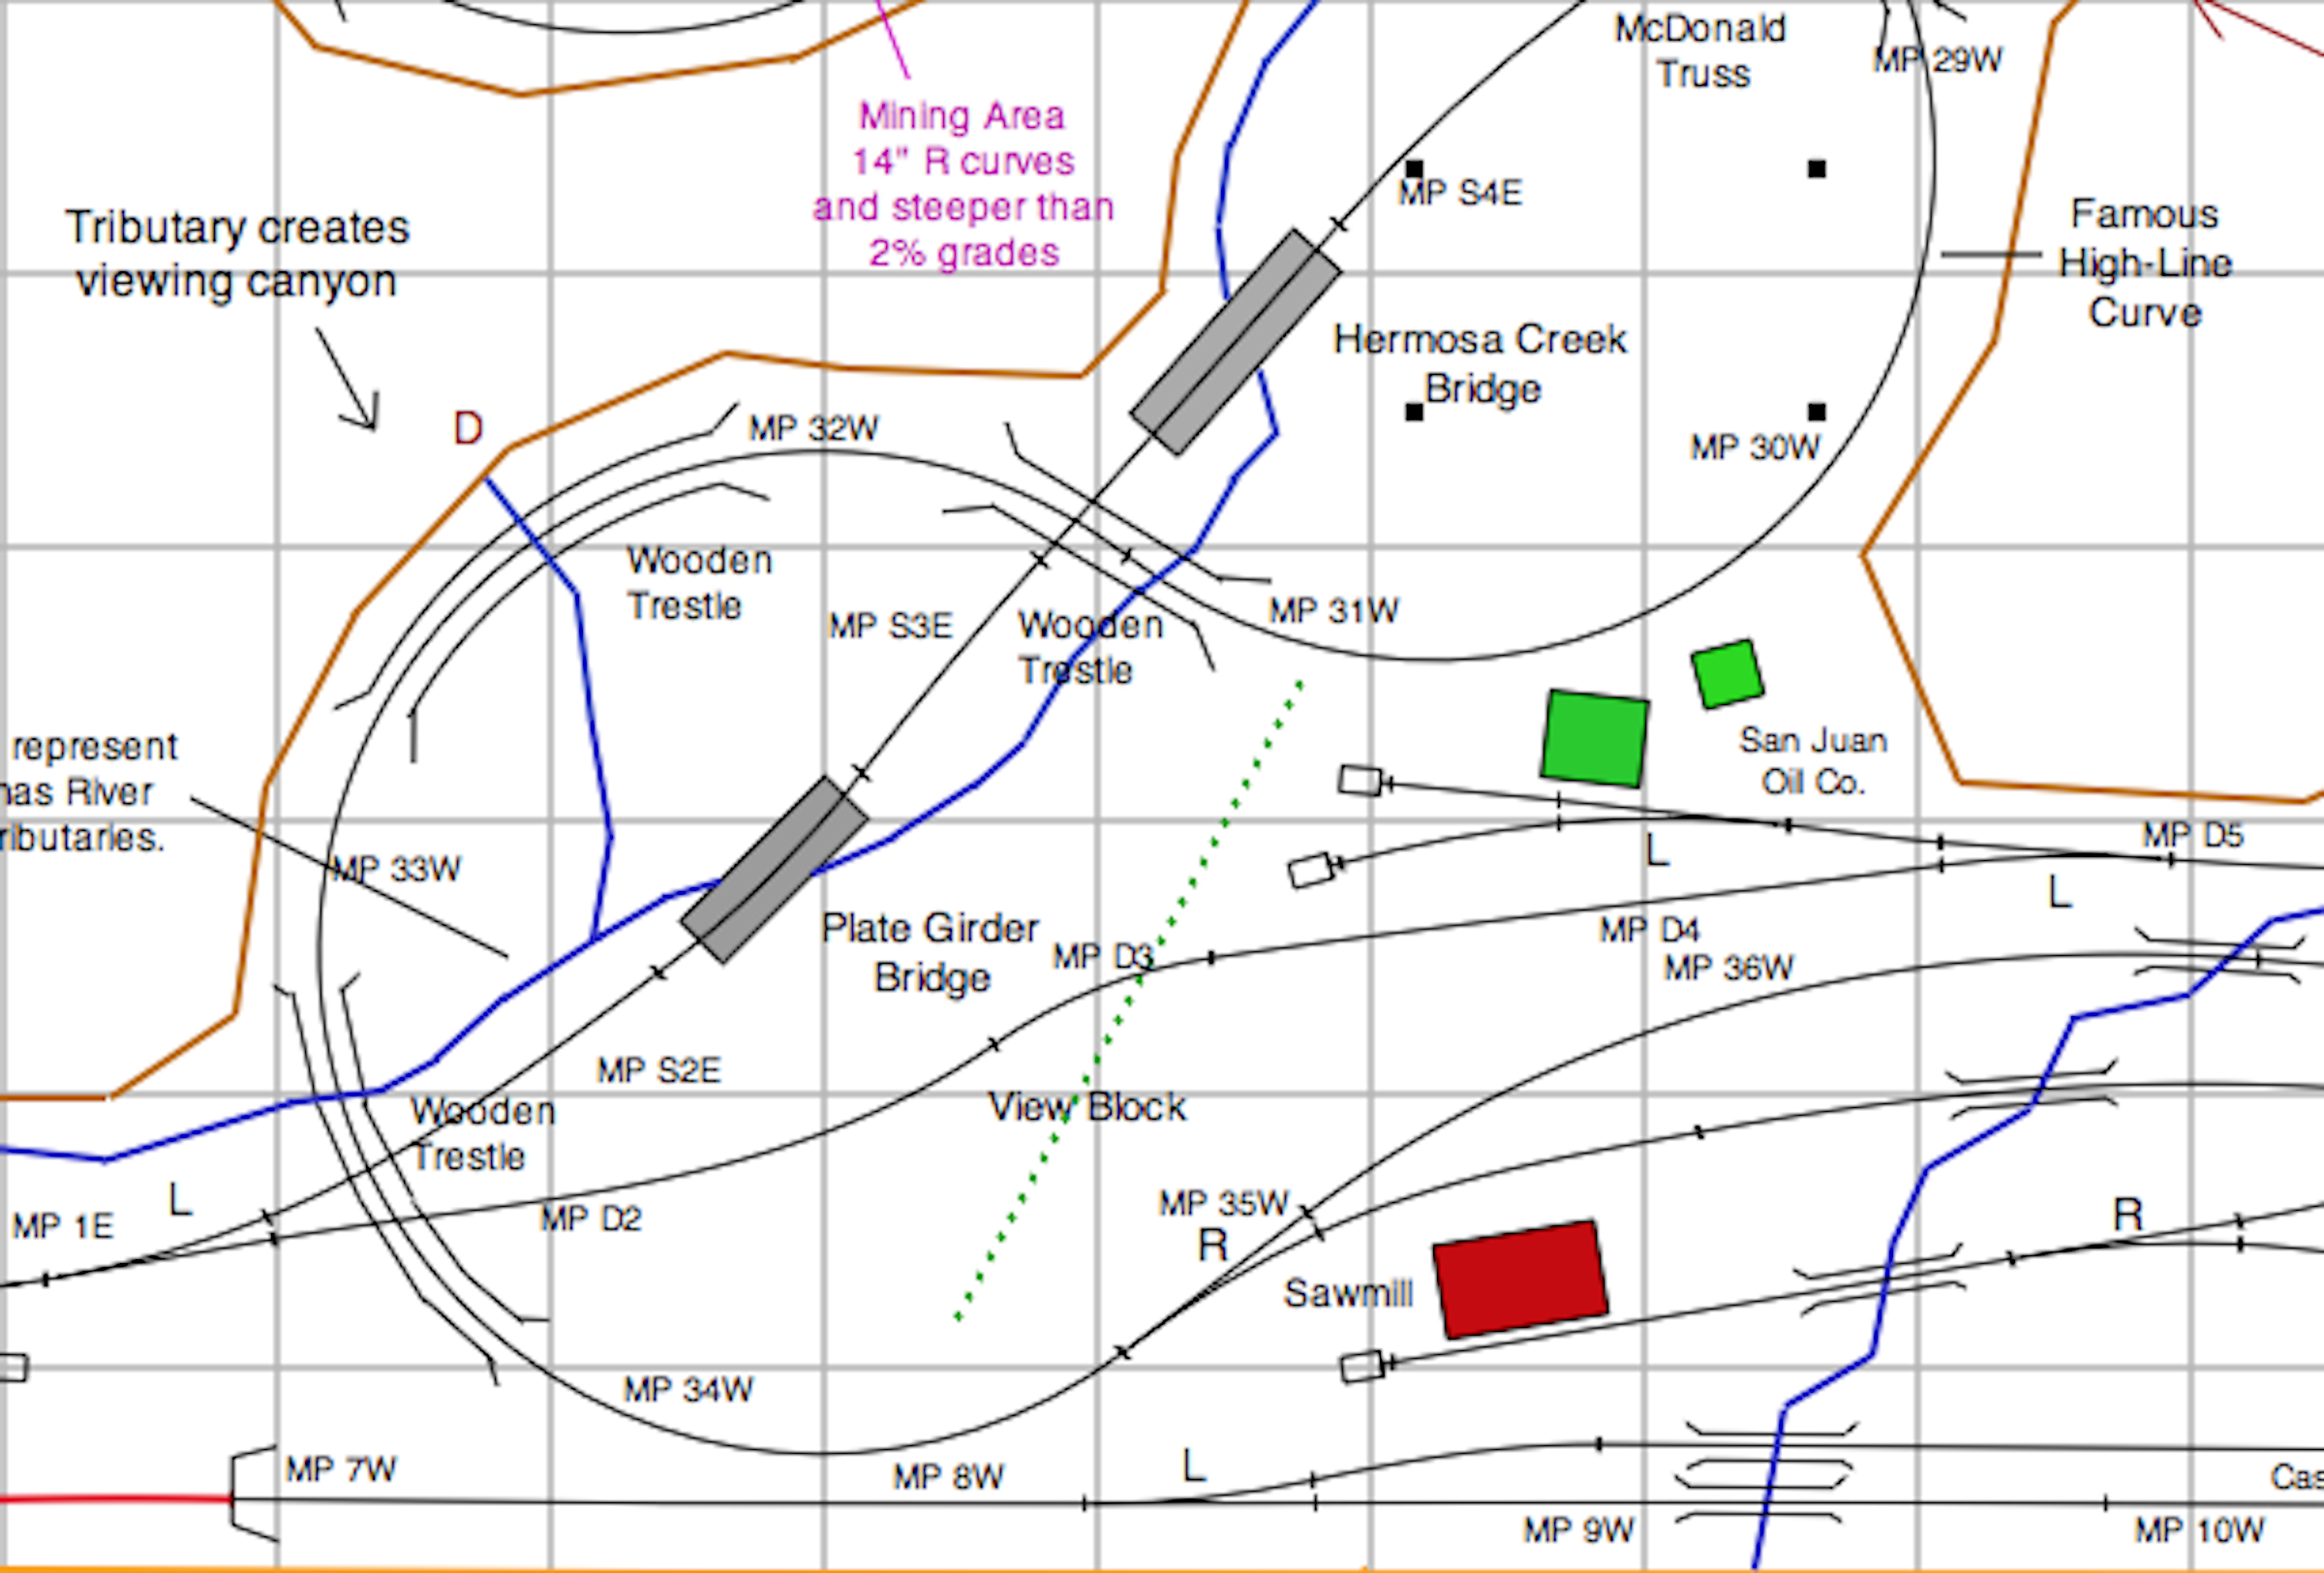 This enlargement of a portion of my track plan shows the location of have  indicated mileposts